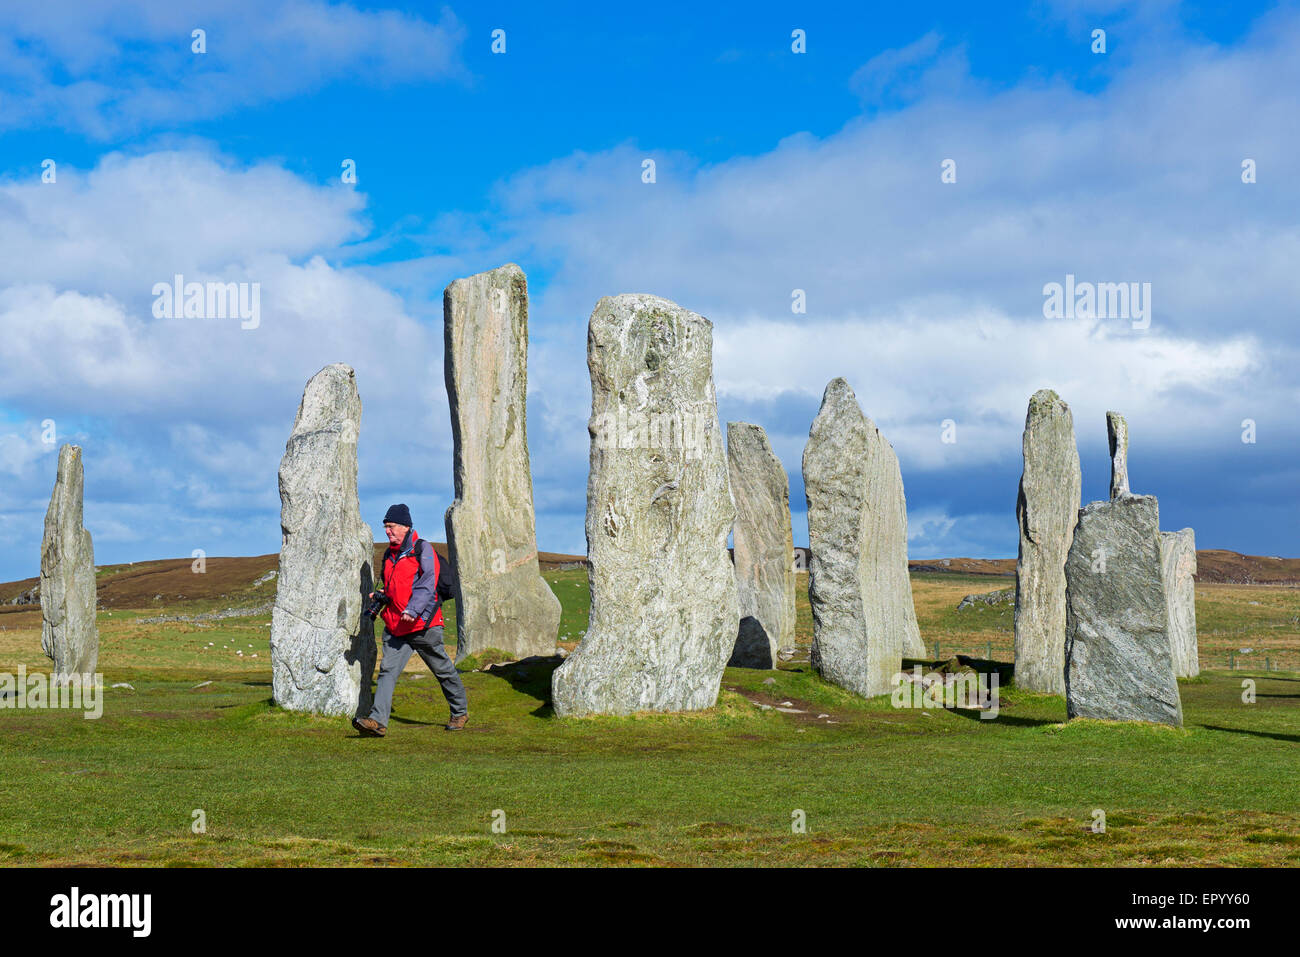 Man walking between the Callanish Stones, Isle of Lewis, Outer Hebrides, Scotland UK - Stock Image